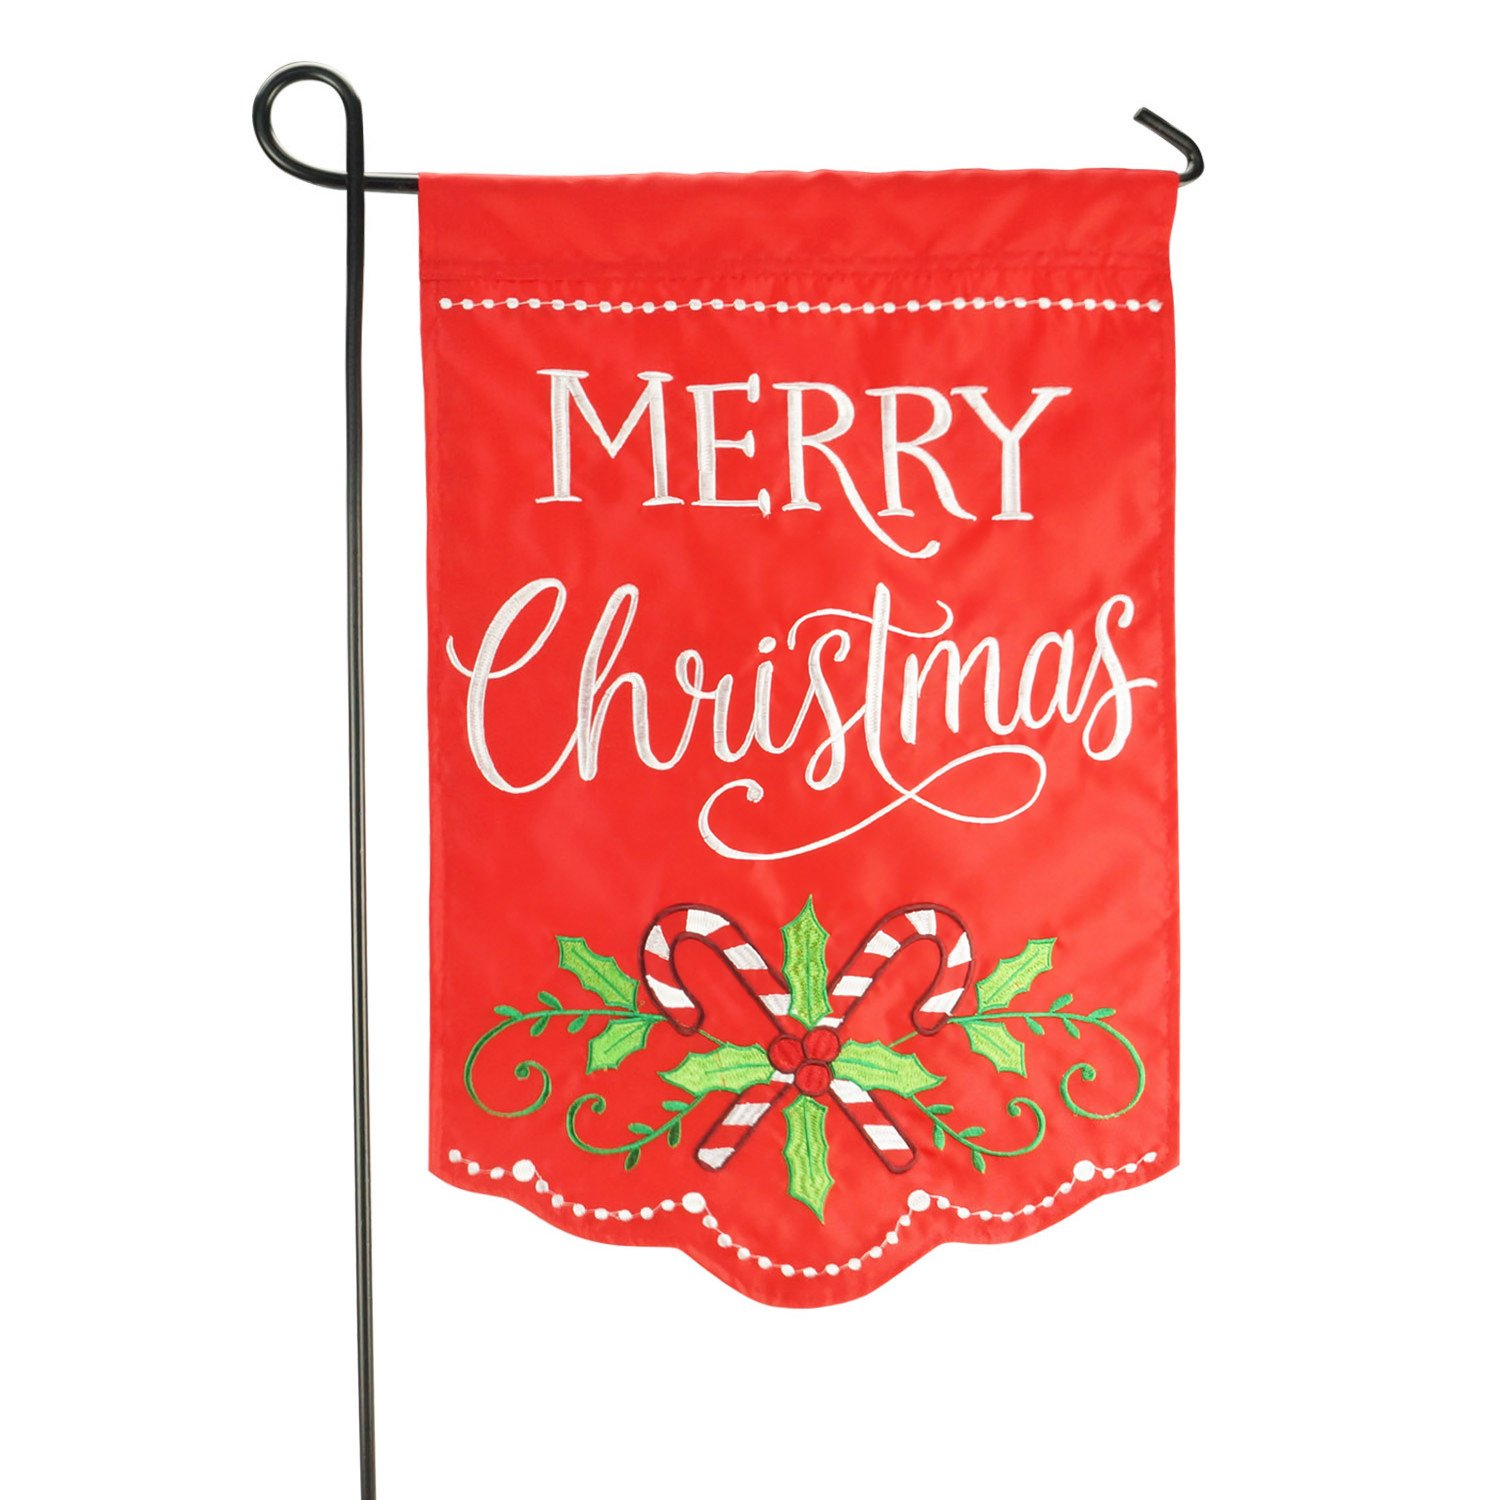 LAYOER Home Garden Flag 12 x 18 Inch Decorative Applique Embroidered Merry Christmas Candy Cane